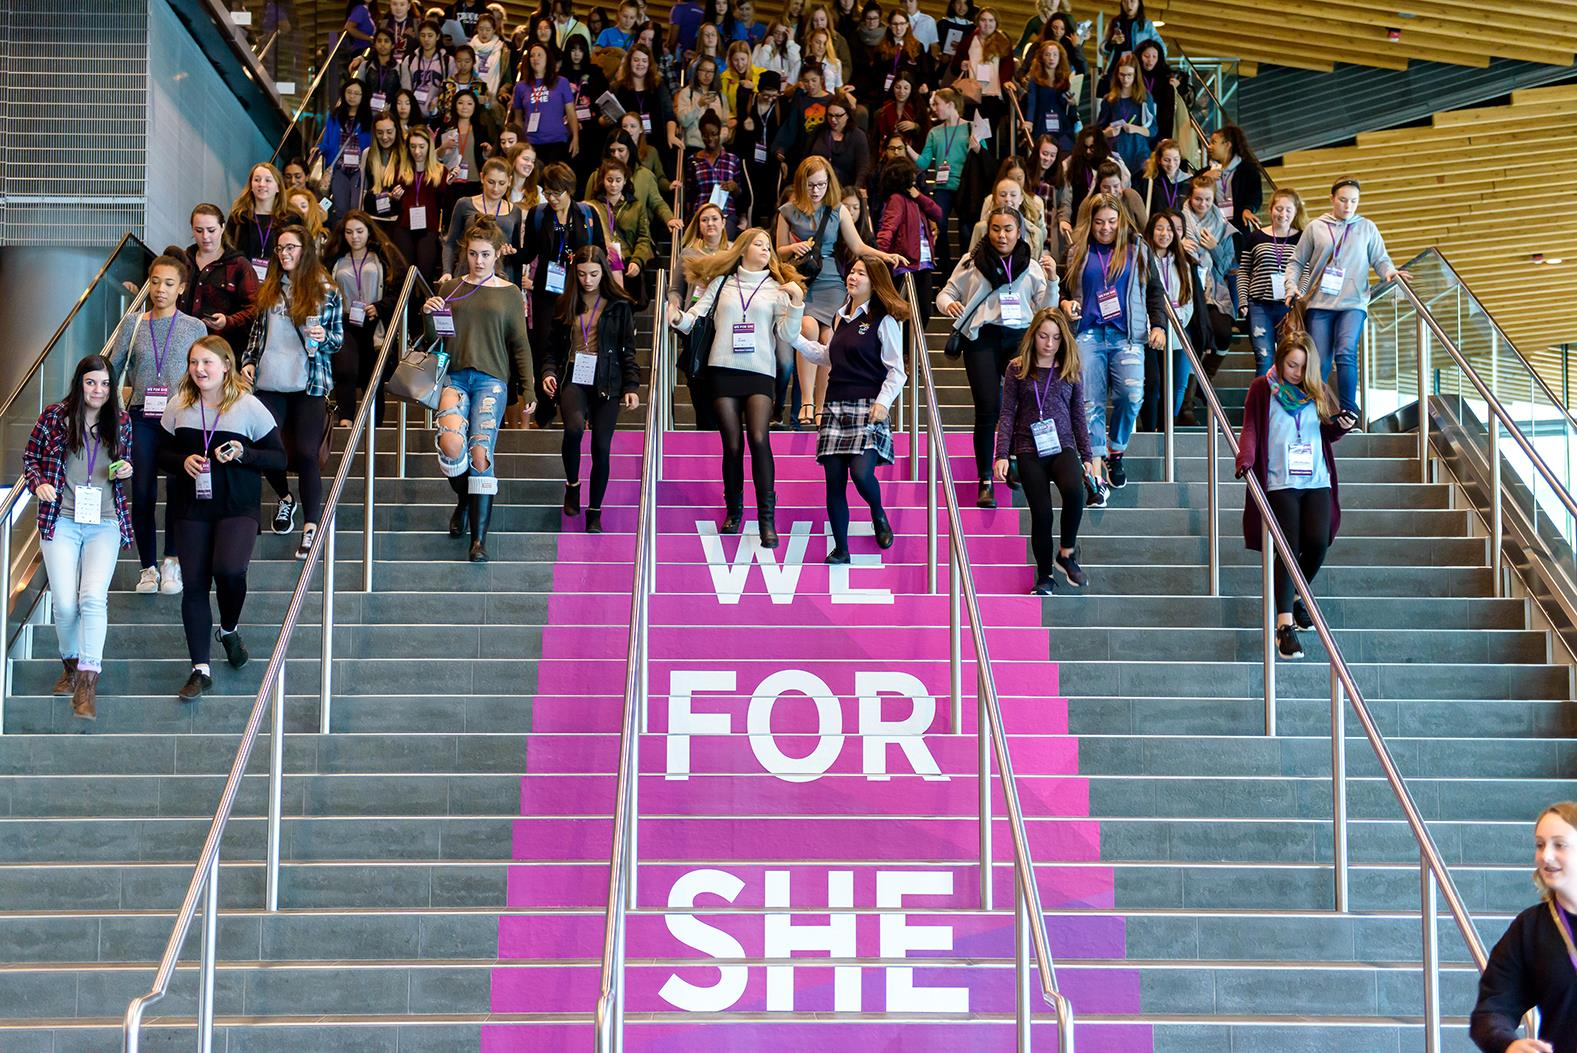 Picture Of Young Women Arriving At WE FOR SHE